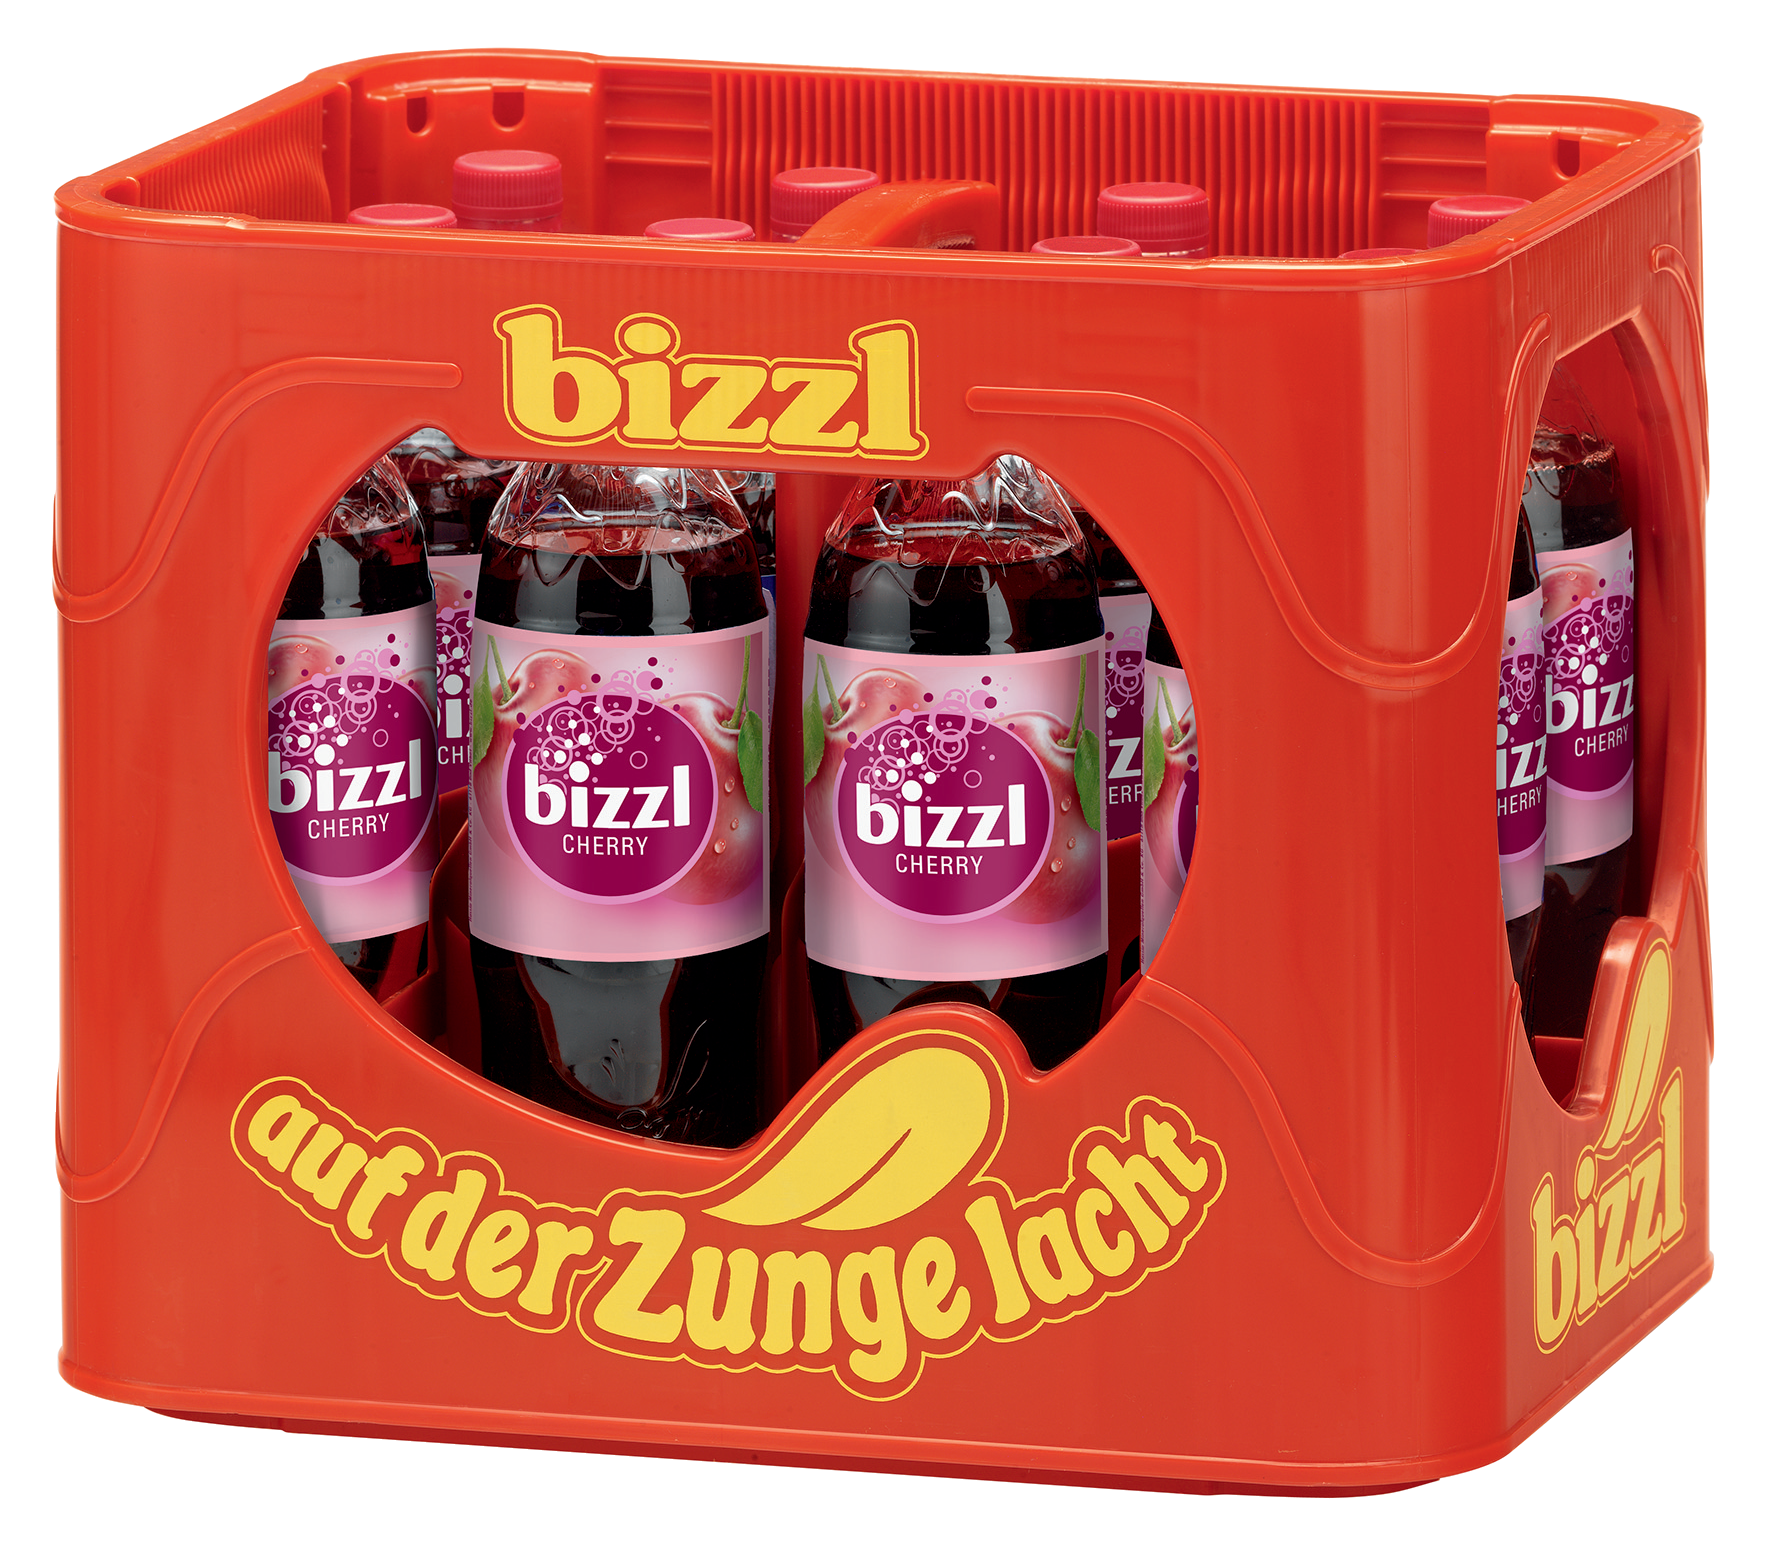 Bizzl Cherry Kasten 12 x 1 l PET Mehrweg